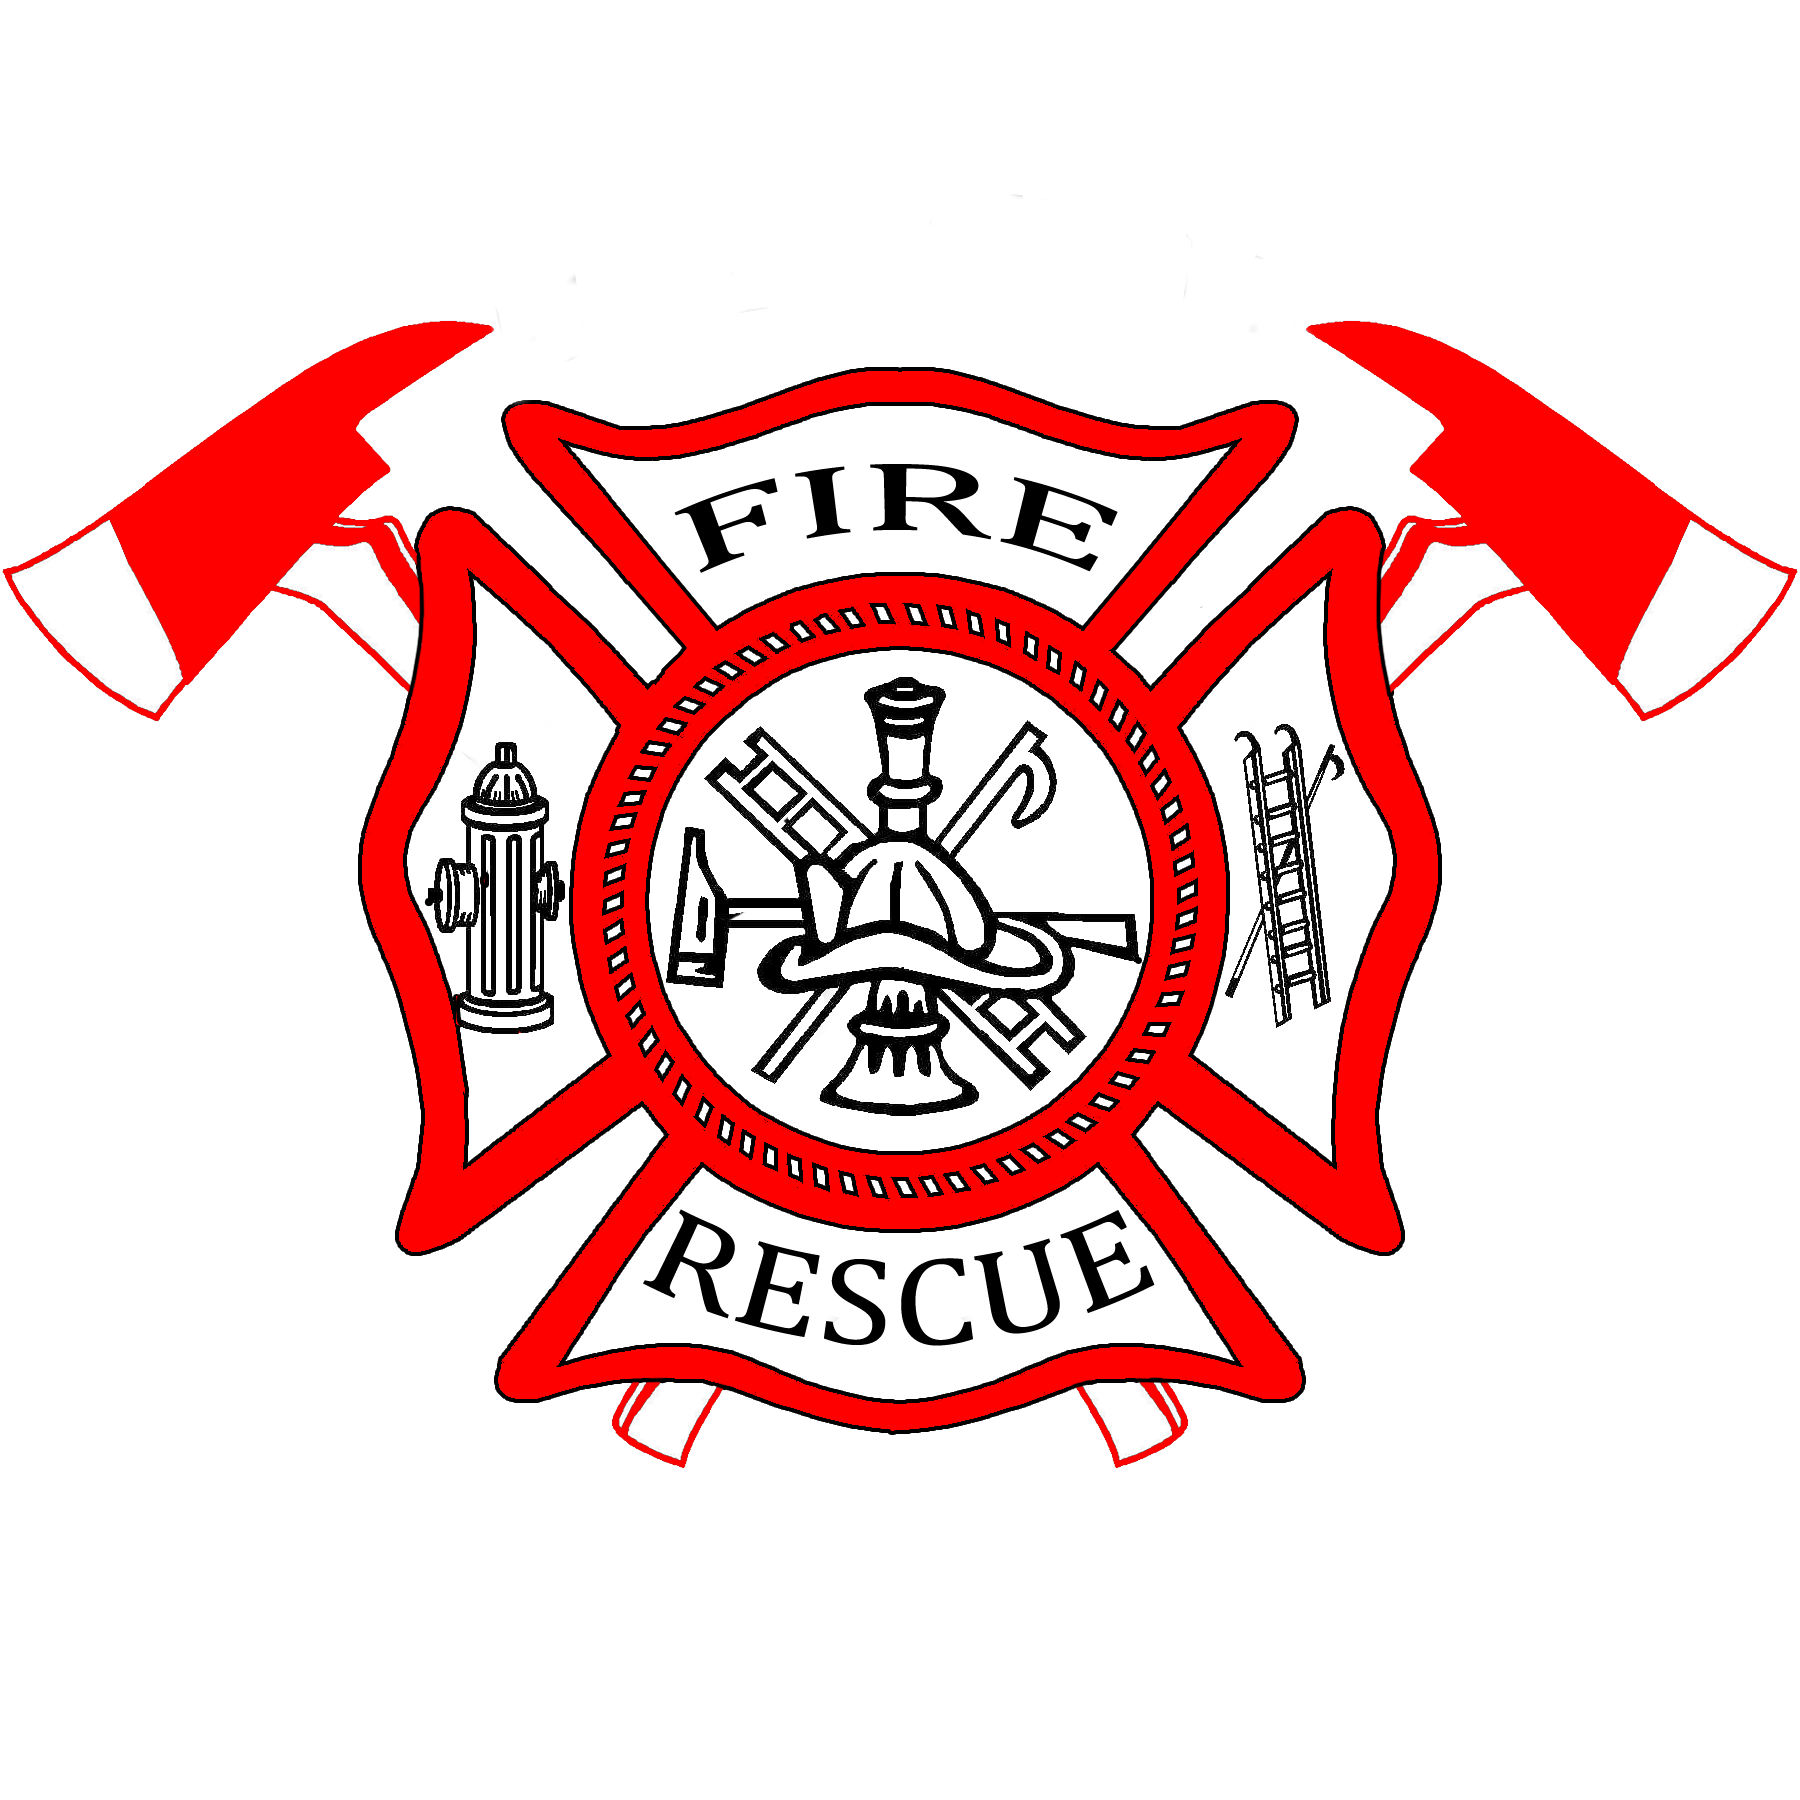 Fire Departments - Red Lake County